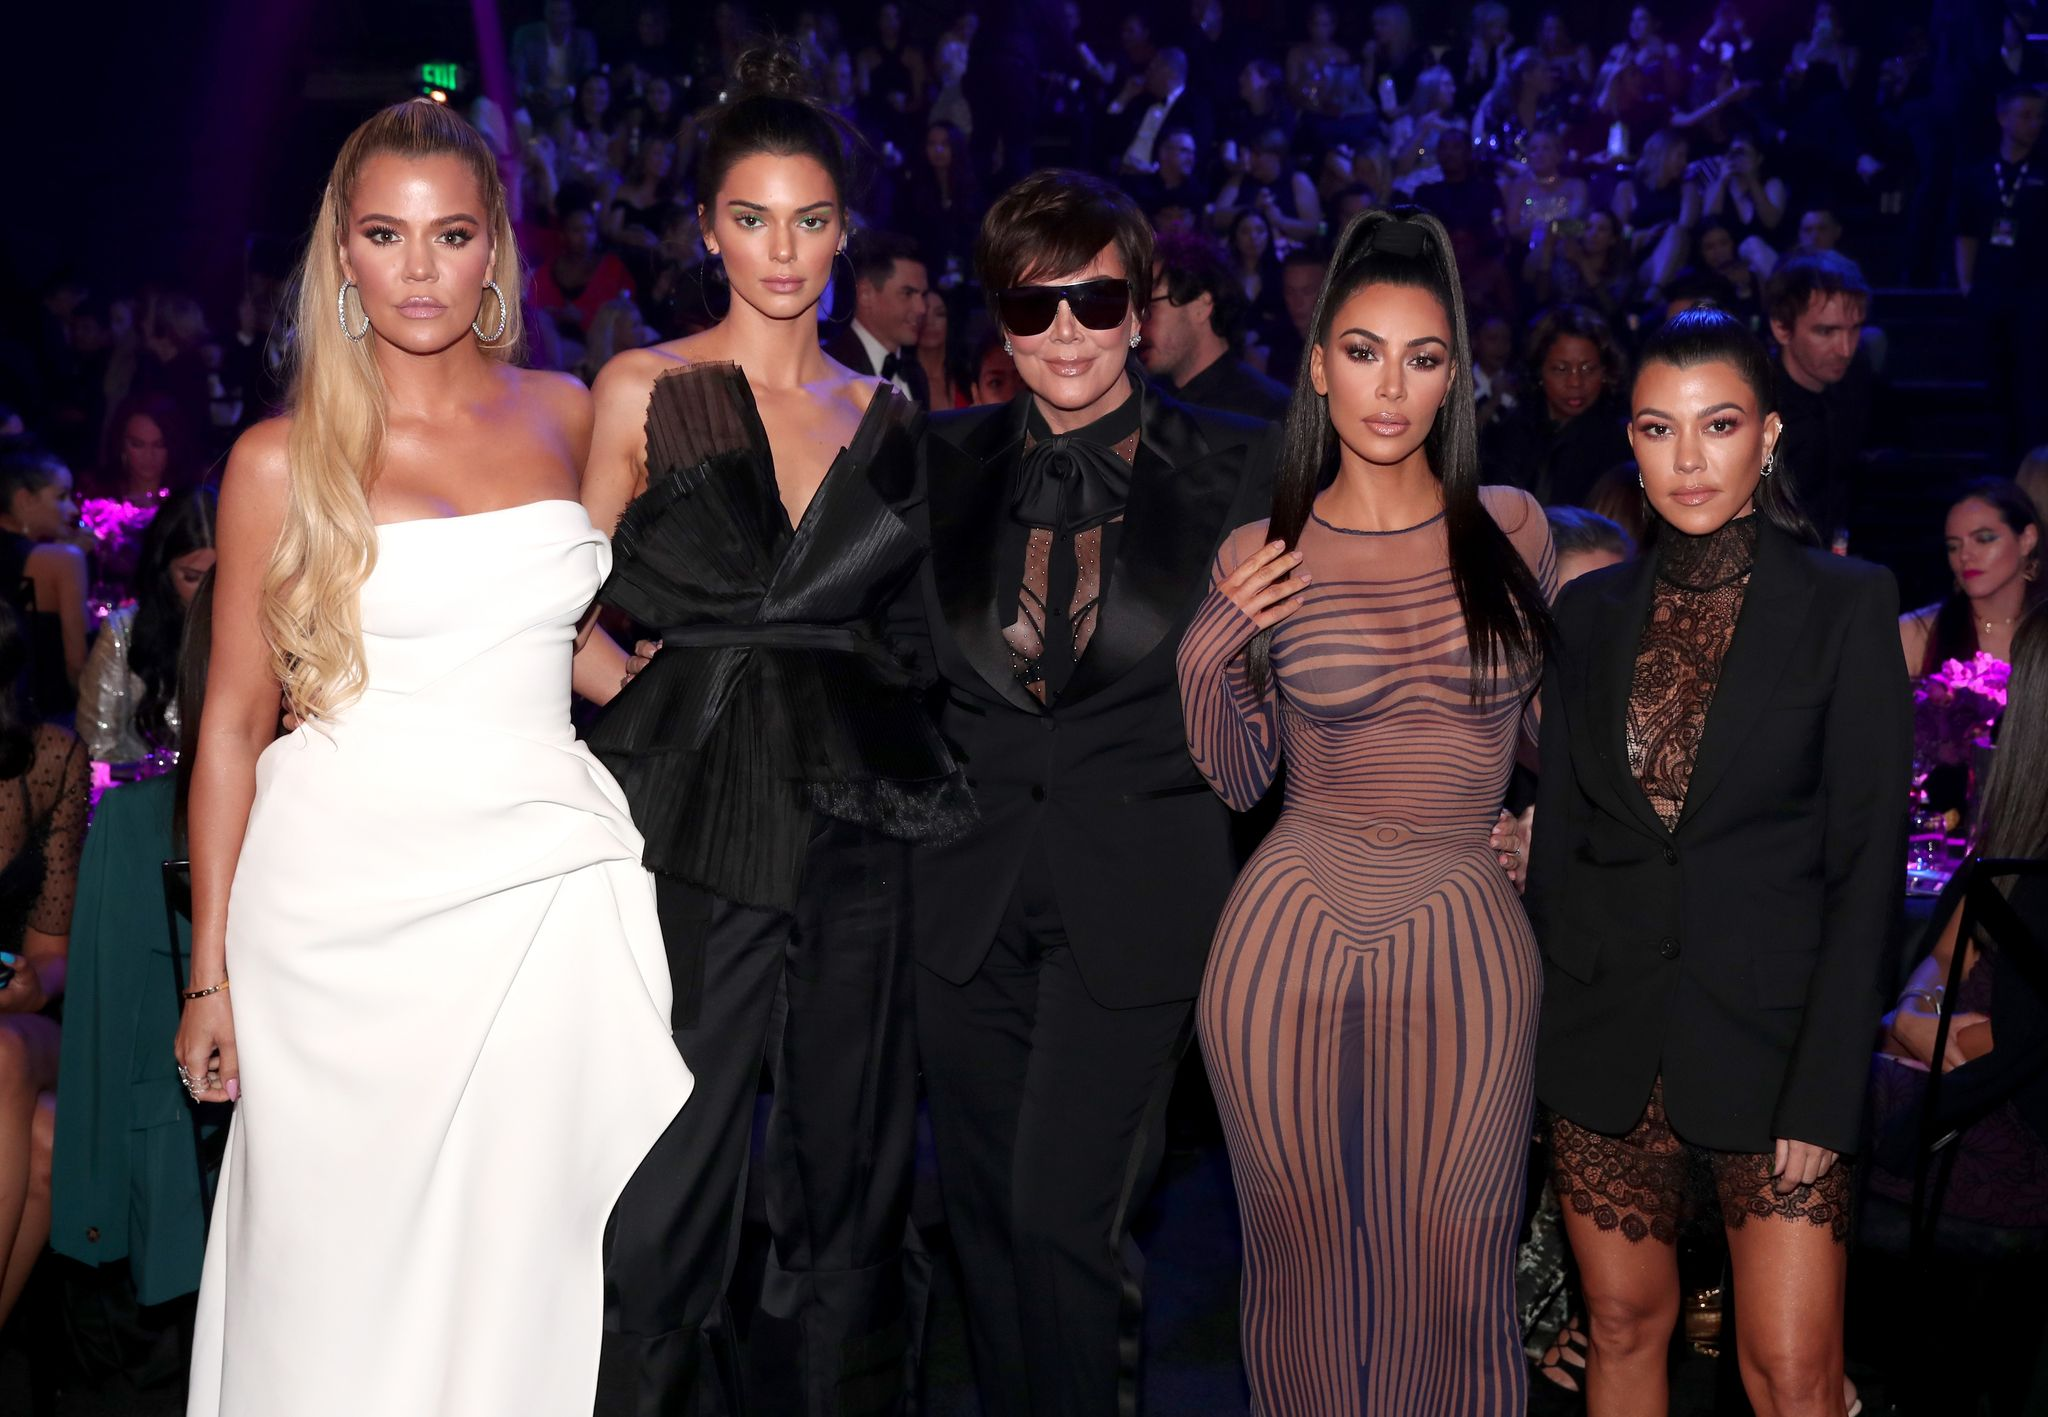 Khloe, Kim & Kourtney Kardashian, and Kris & Kendall Jenner at the 2018 E! People's Choice Awards in November 2018 | Photo: Getty Images